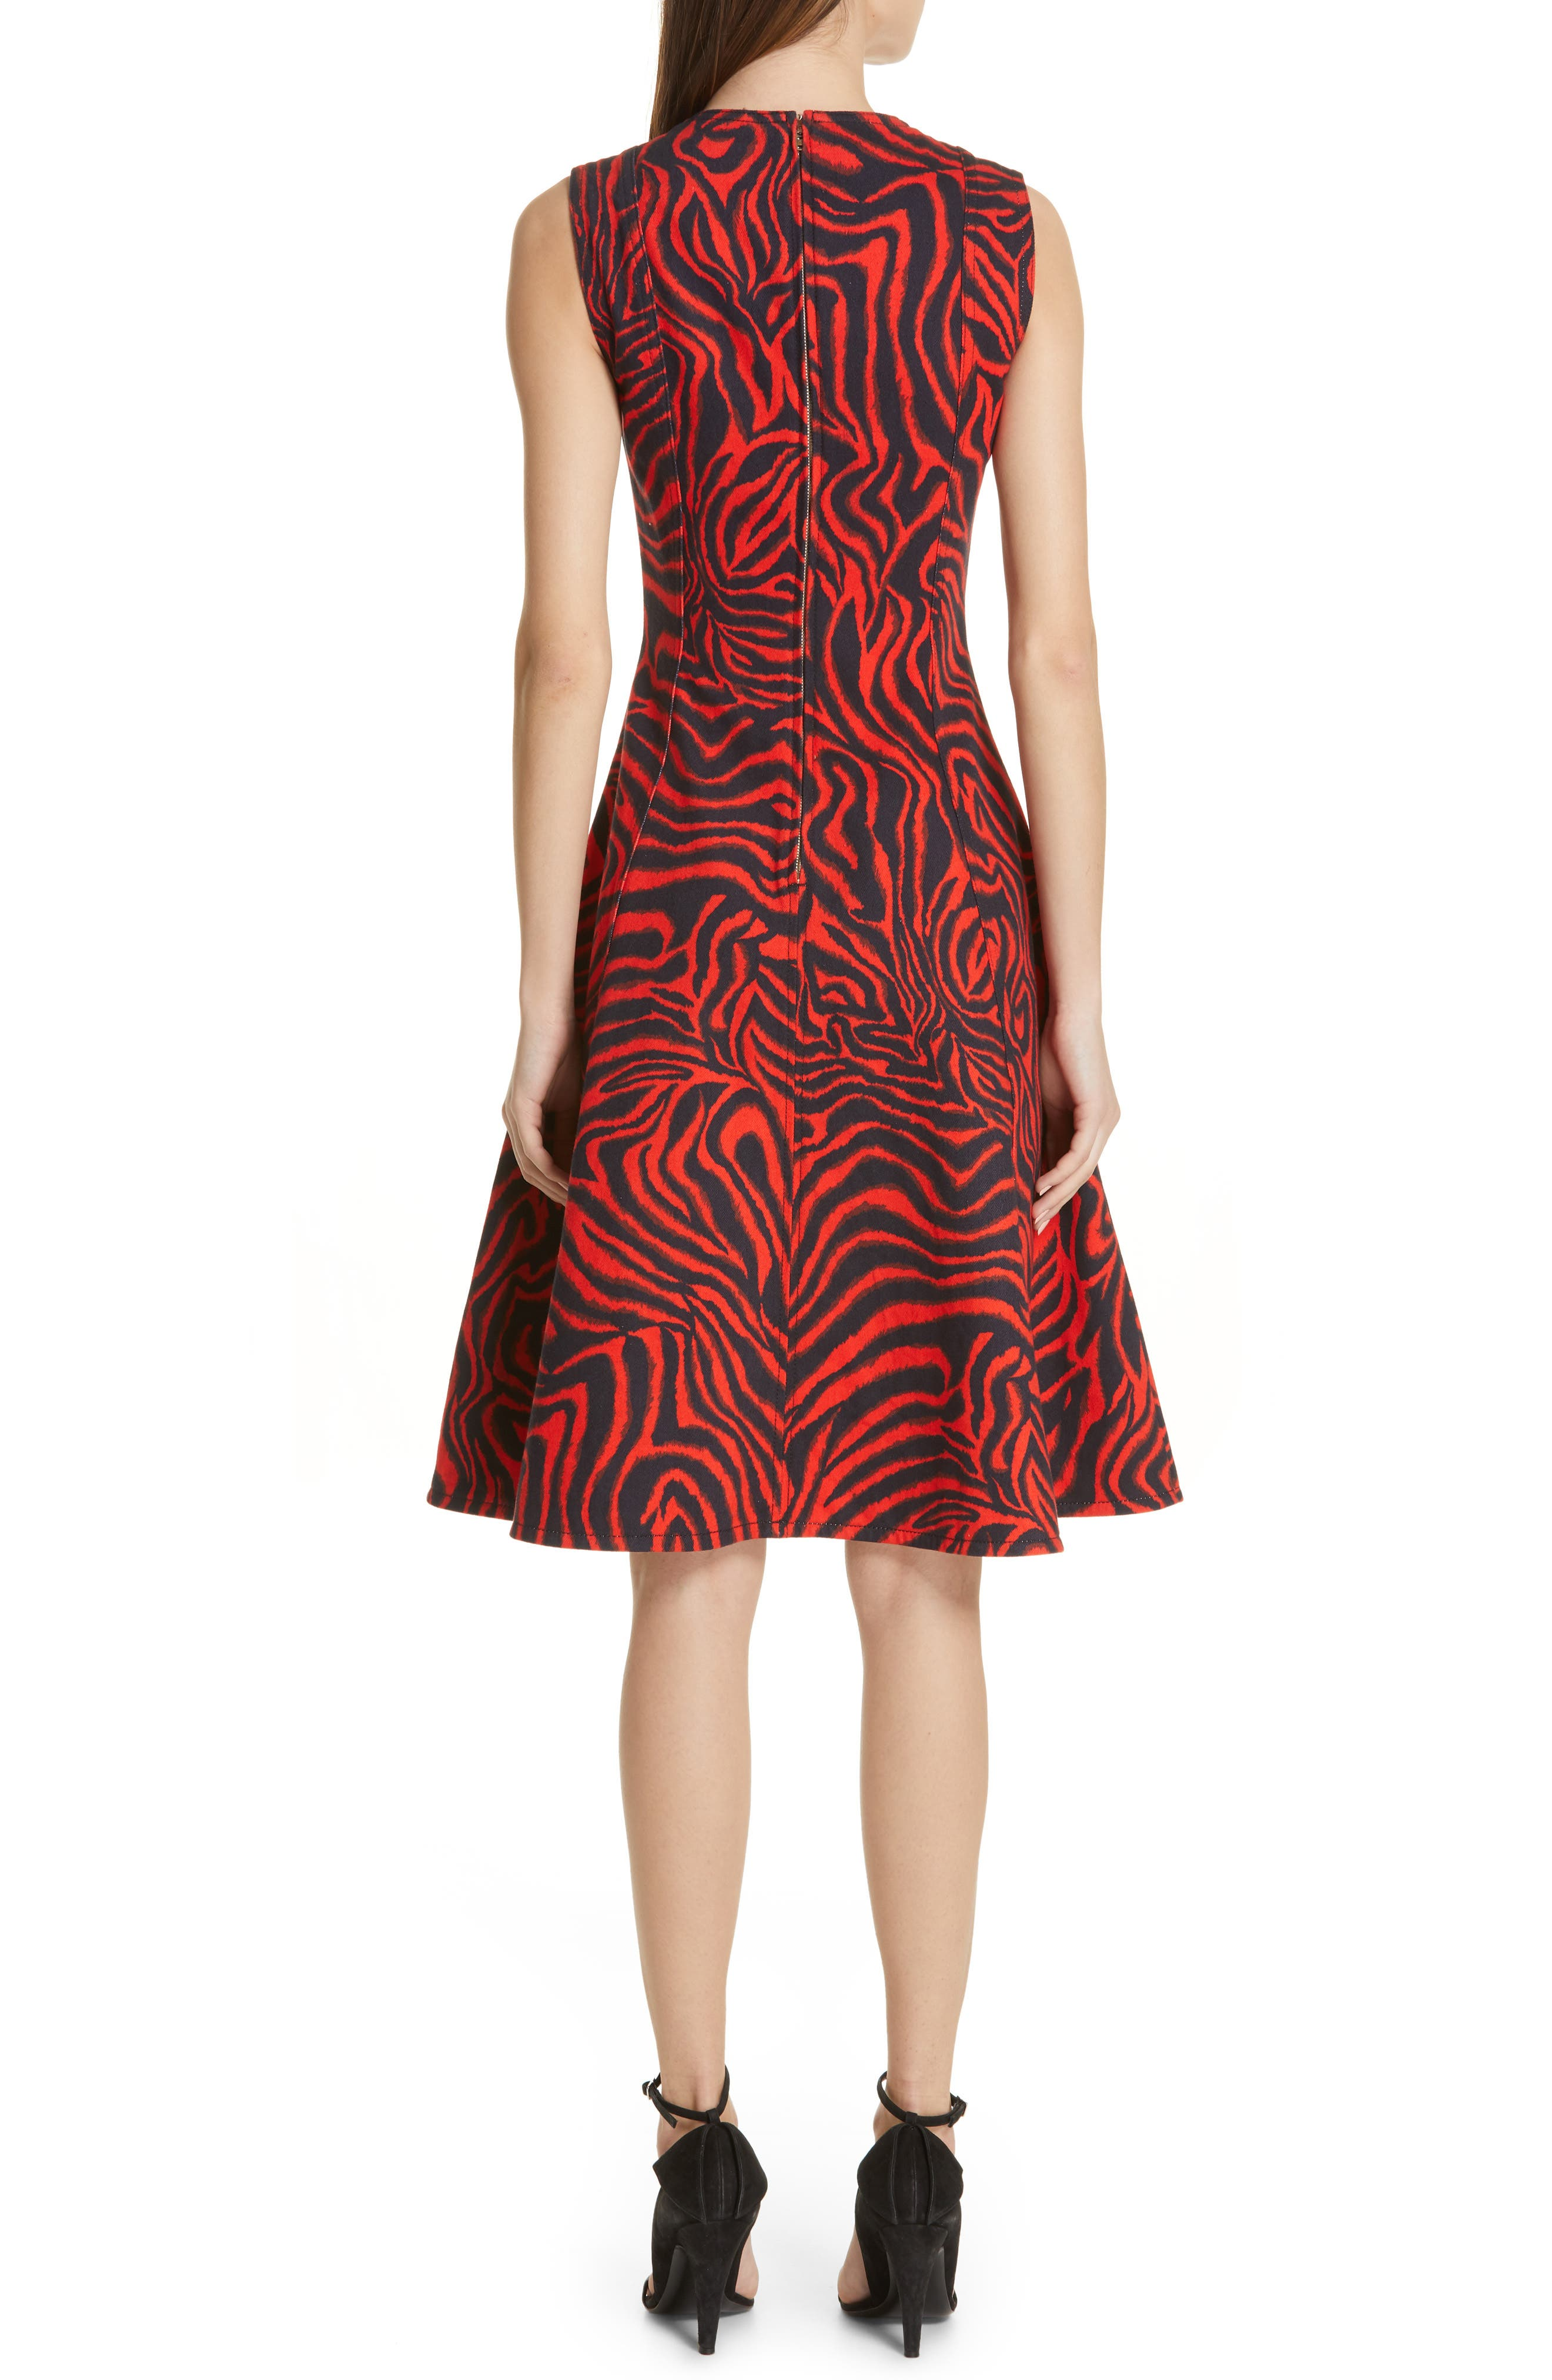 CALVIN KLEIN 205W39NYC, Zebra Print Denim A-Line Dress, Alternate thumbnail 2, color, RED ZEBRA